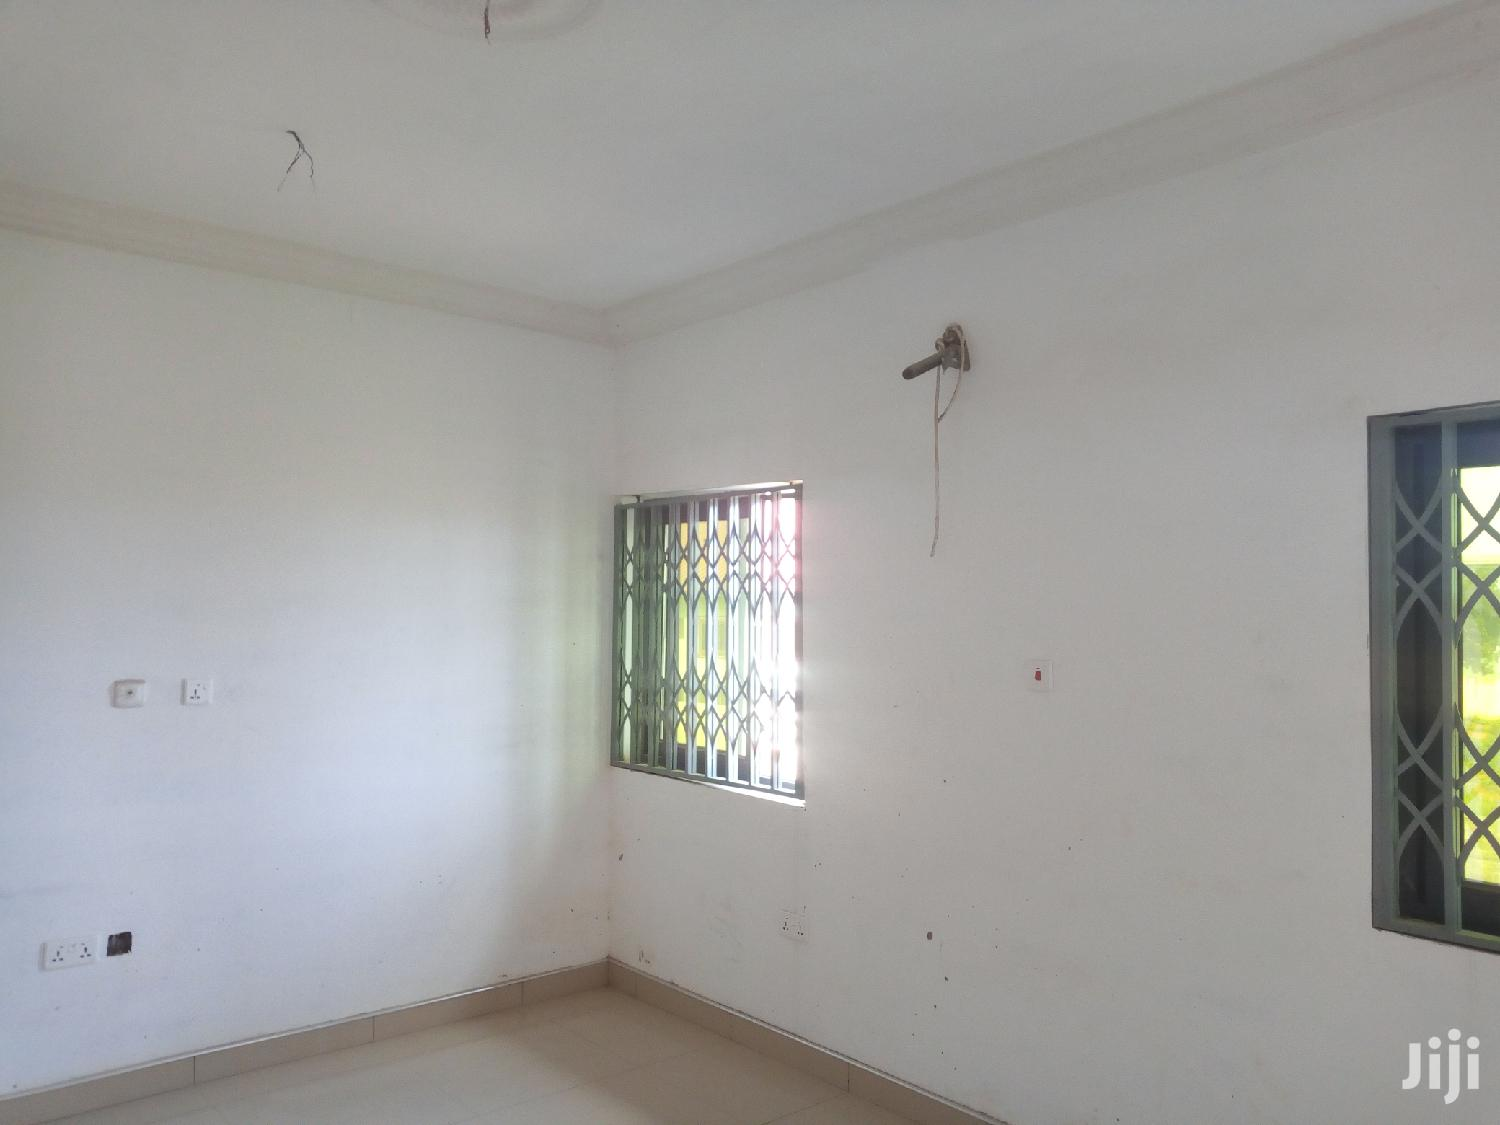 Executive 5 Bedroom House For Sale At Oyarifa | Houses & Apartments For Sale for sale in Adenta Municipal, Greater Accra, Ghana